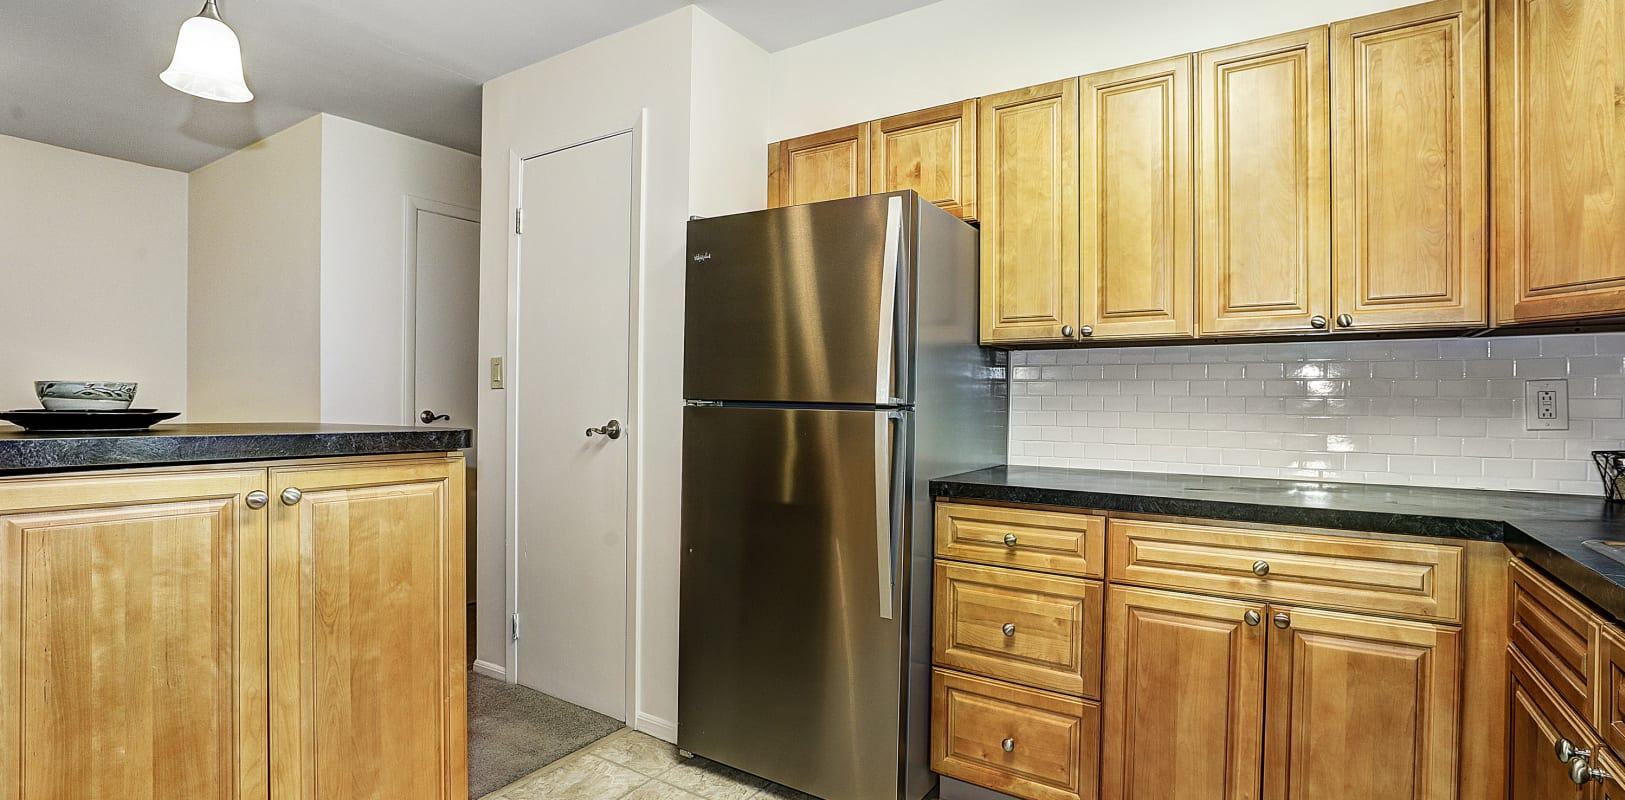 Stainless steel fridge and ample counter space in the kitchen at Penn Crest Apartments in Allentown, Pennsylvania